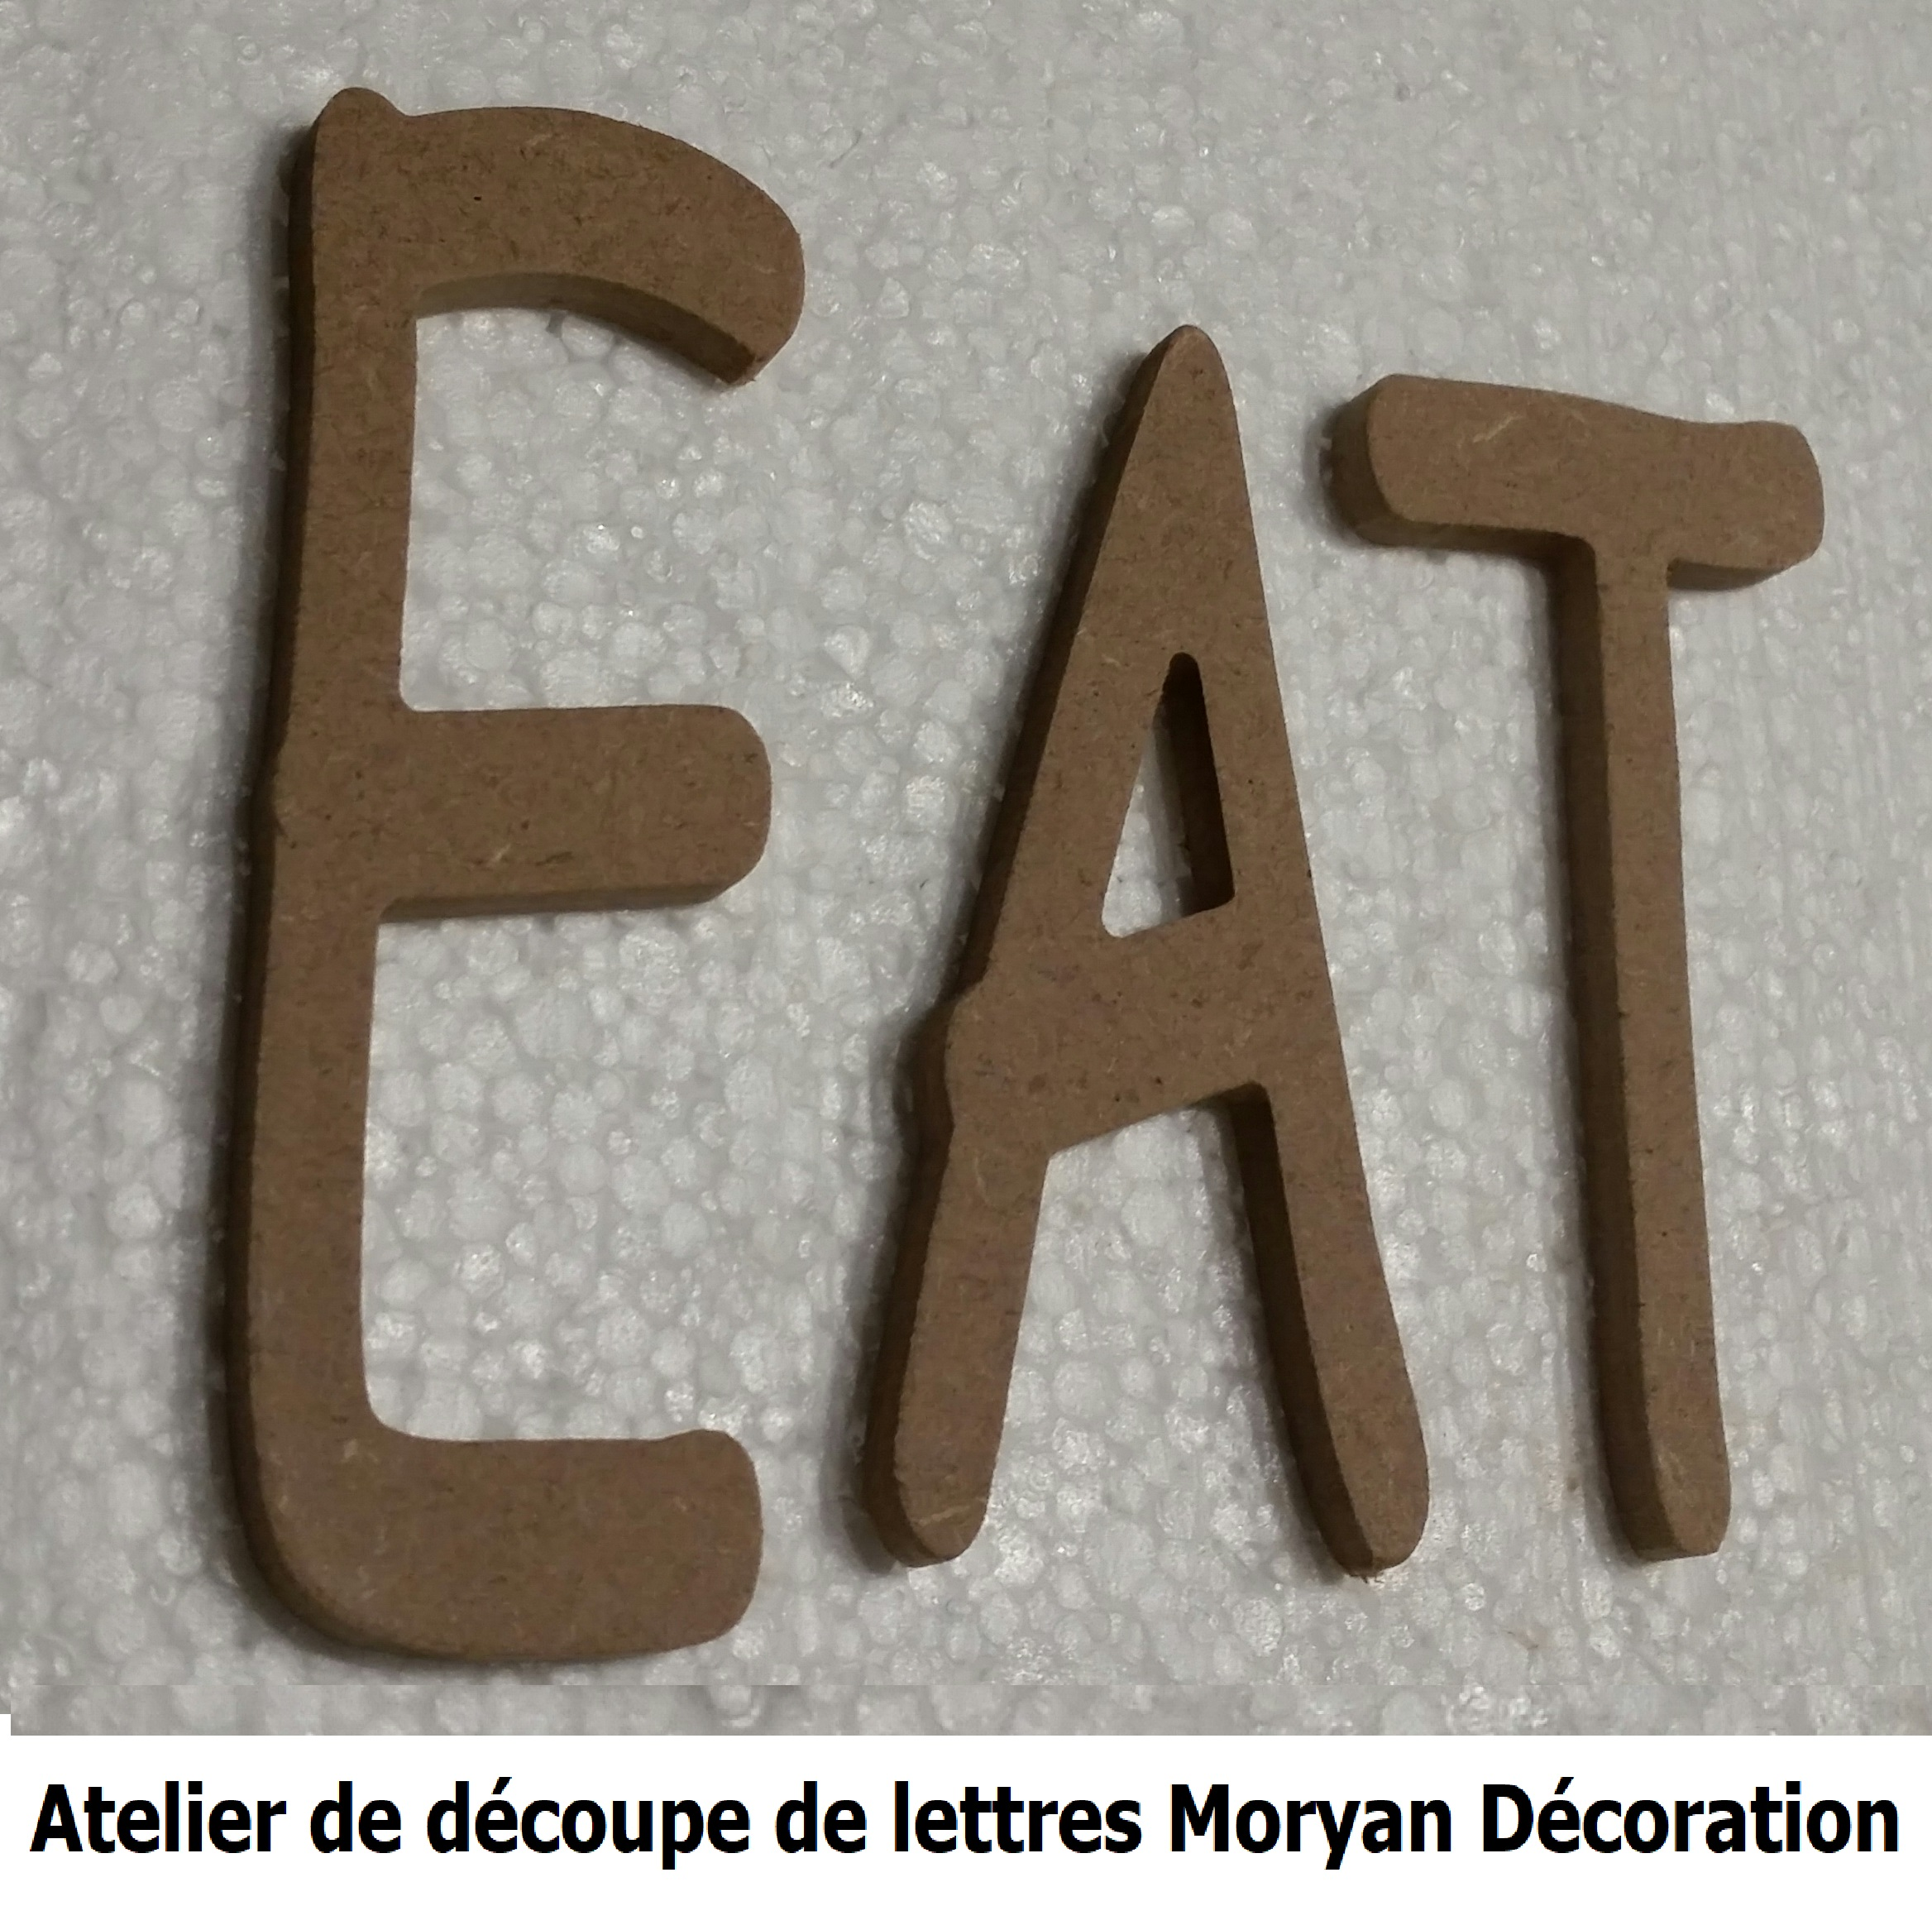 Lettre decorative EAT